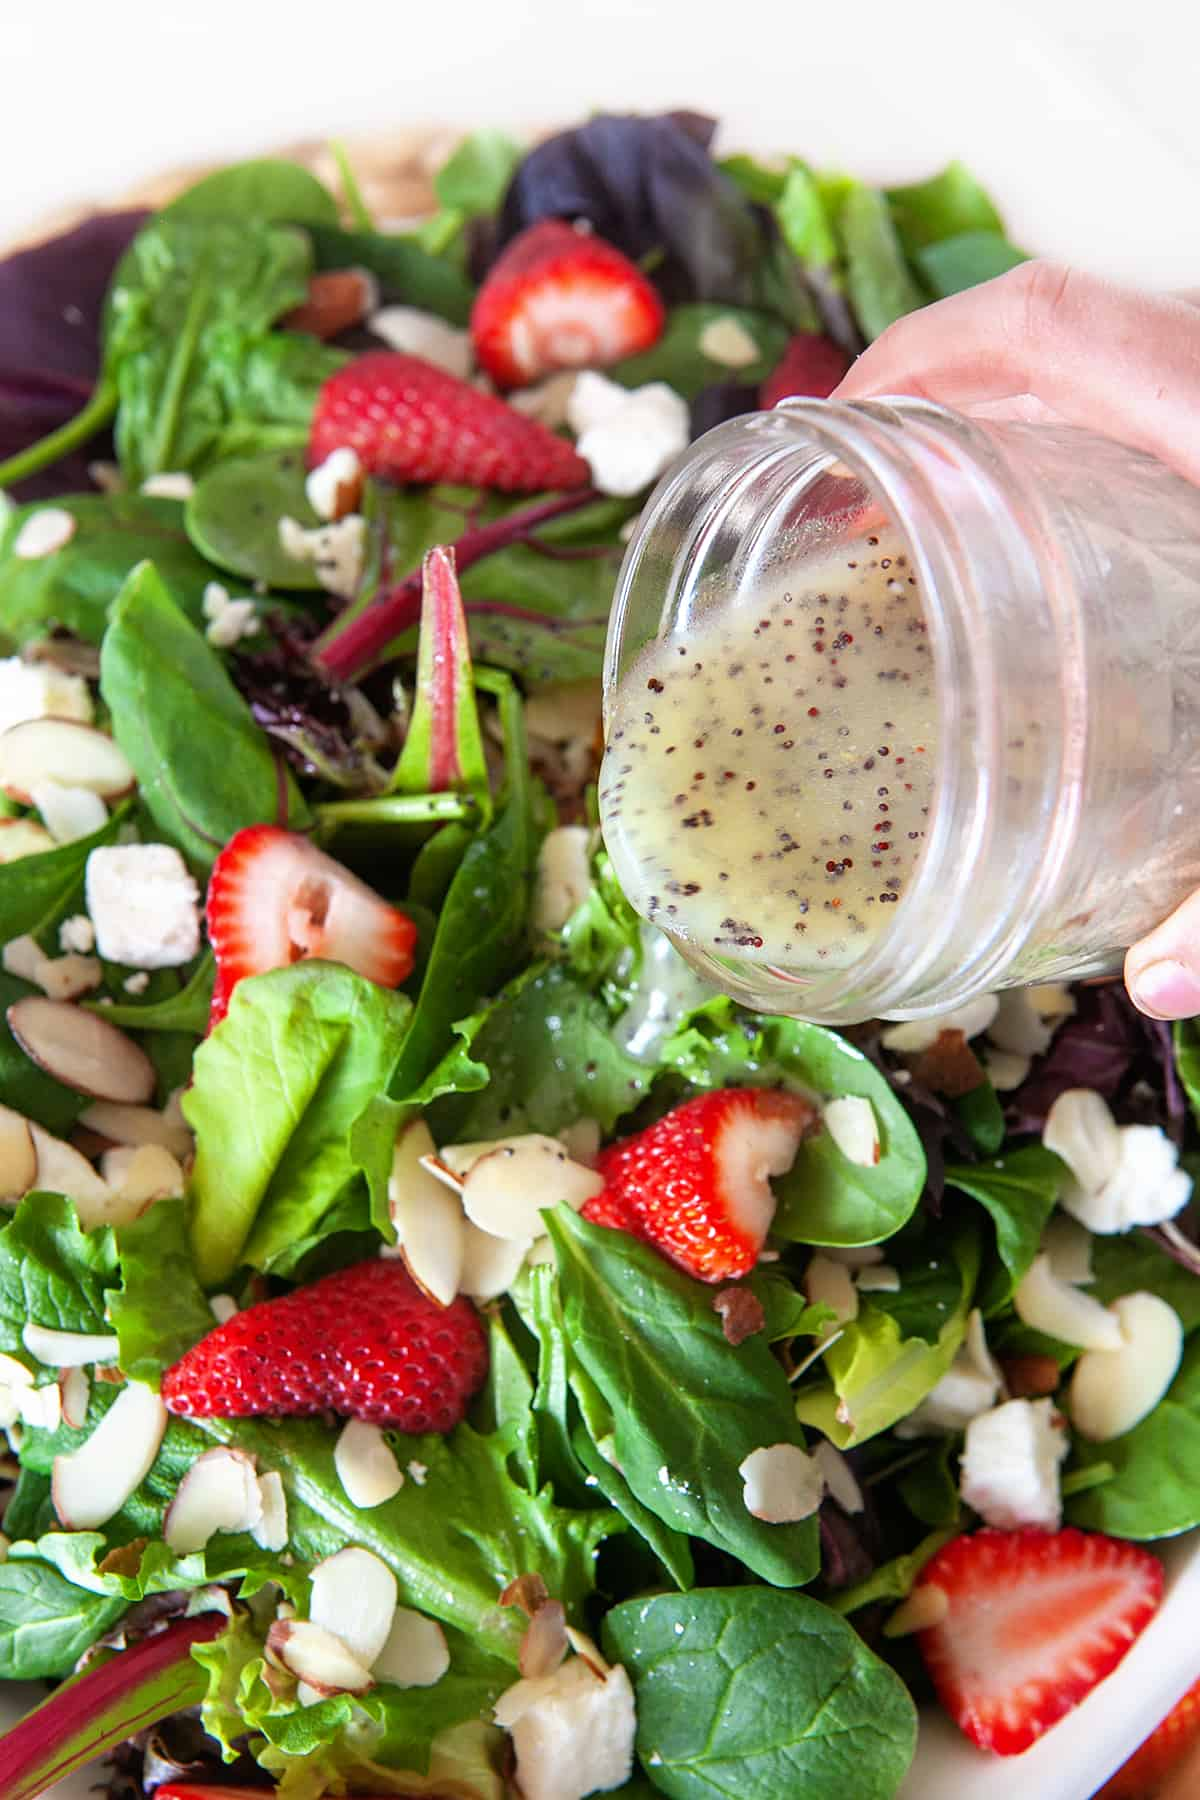 Pouring Poppy Seed Dressing on a salad